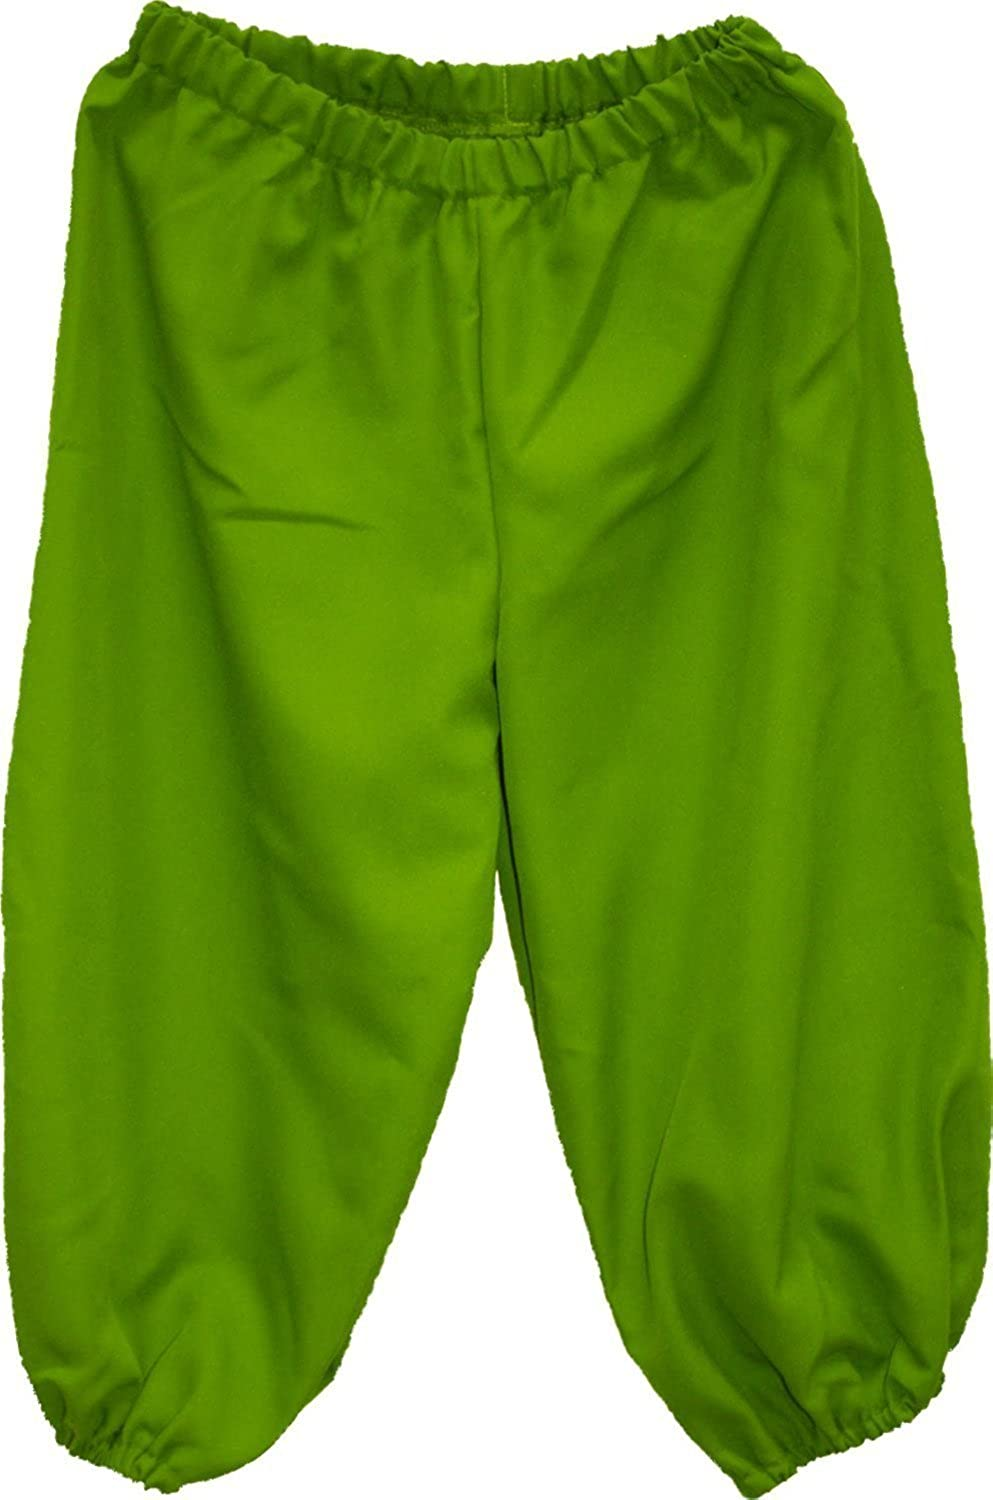 Deluxe Adult Costumes - Men's olive pirate knickers, pirate breeches, pirate pants, pirate trousers by Alexanders Costumes